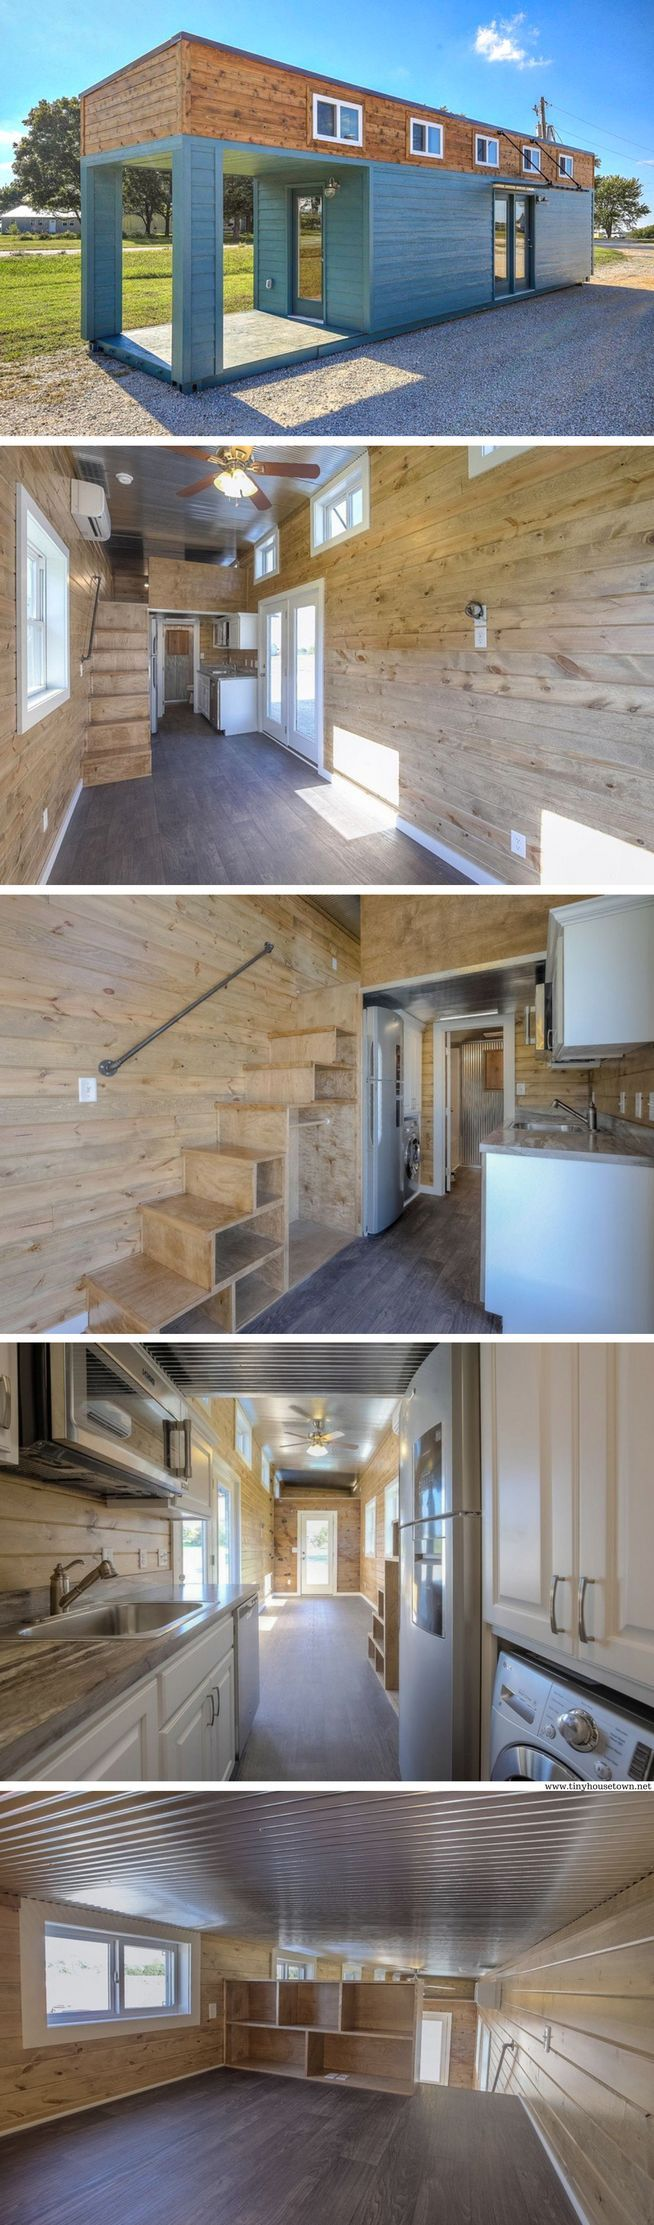 A 312 sq ft shipping container home